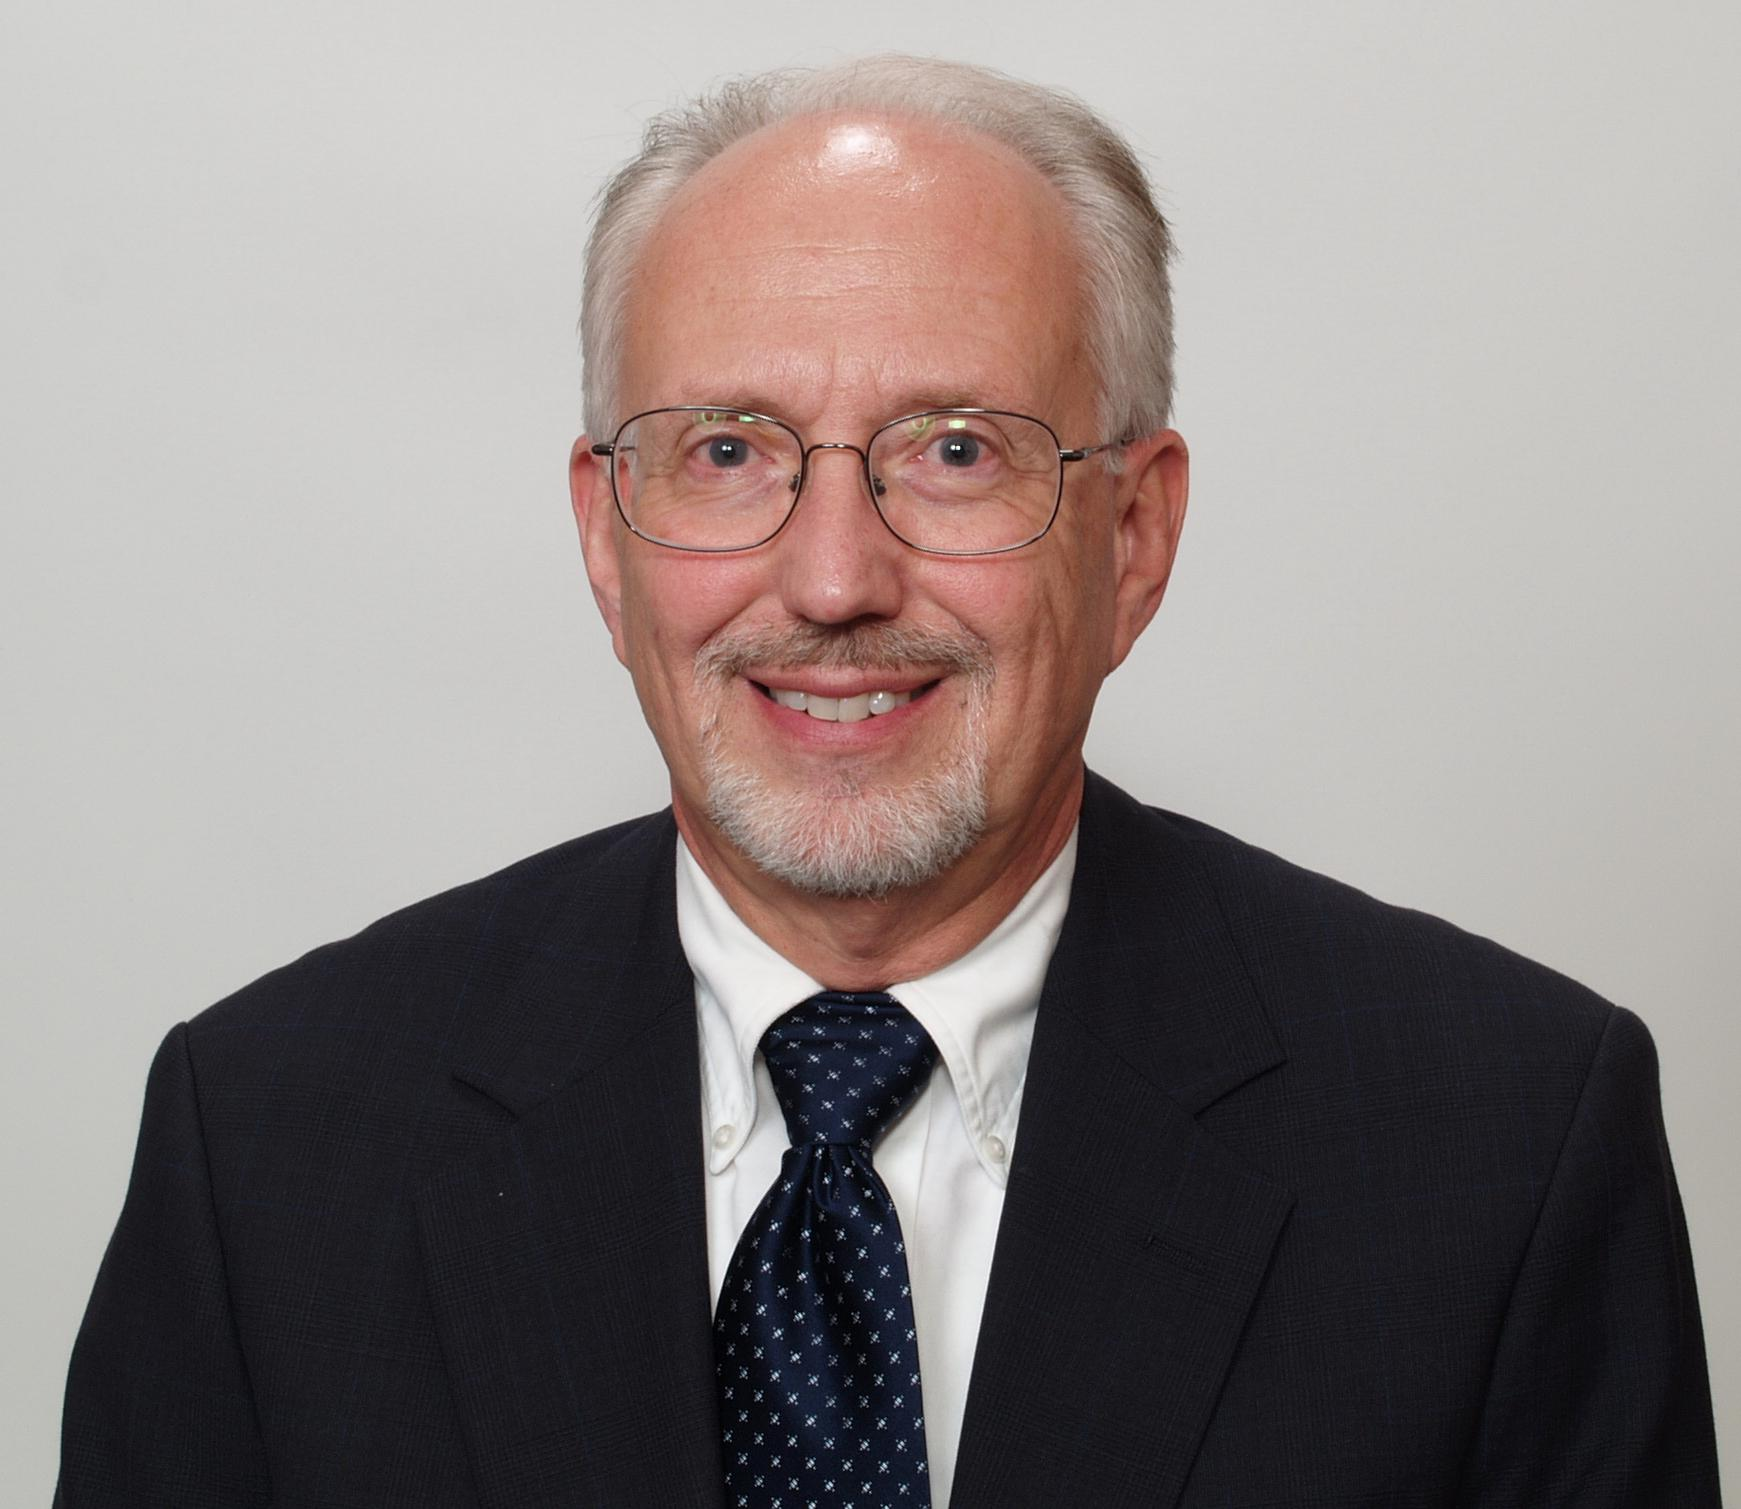 VICTOR D. THOM Financial Professional & Insurance Agent